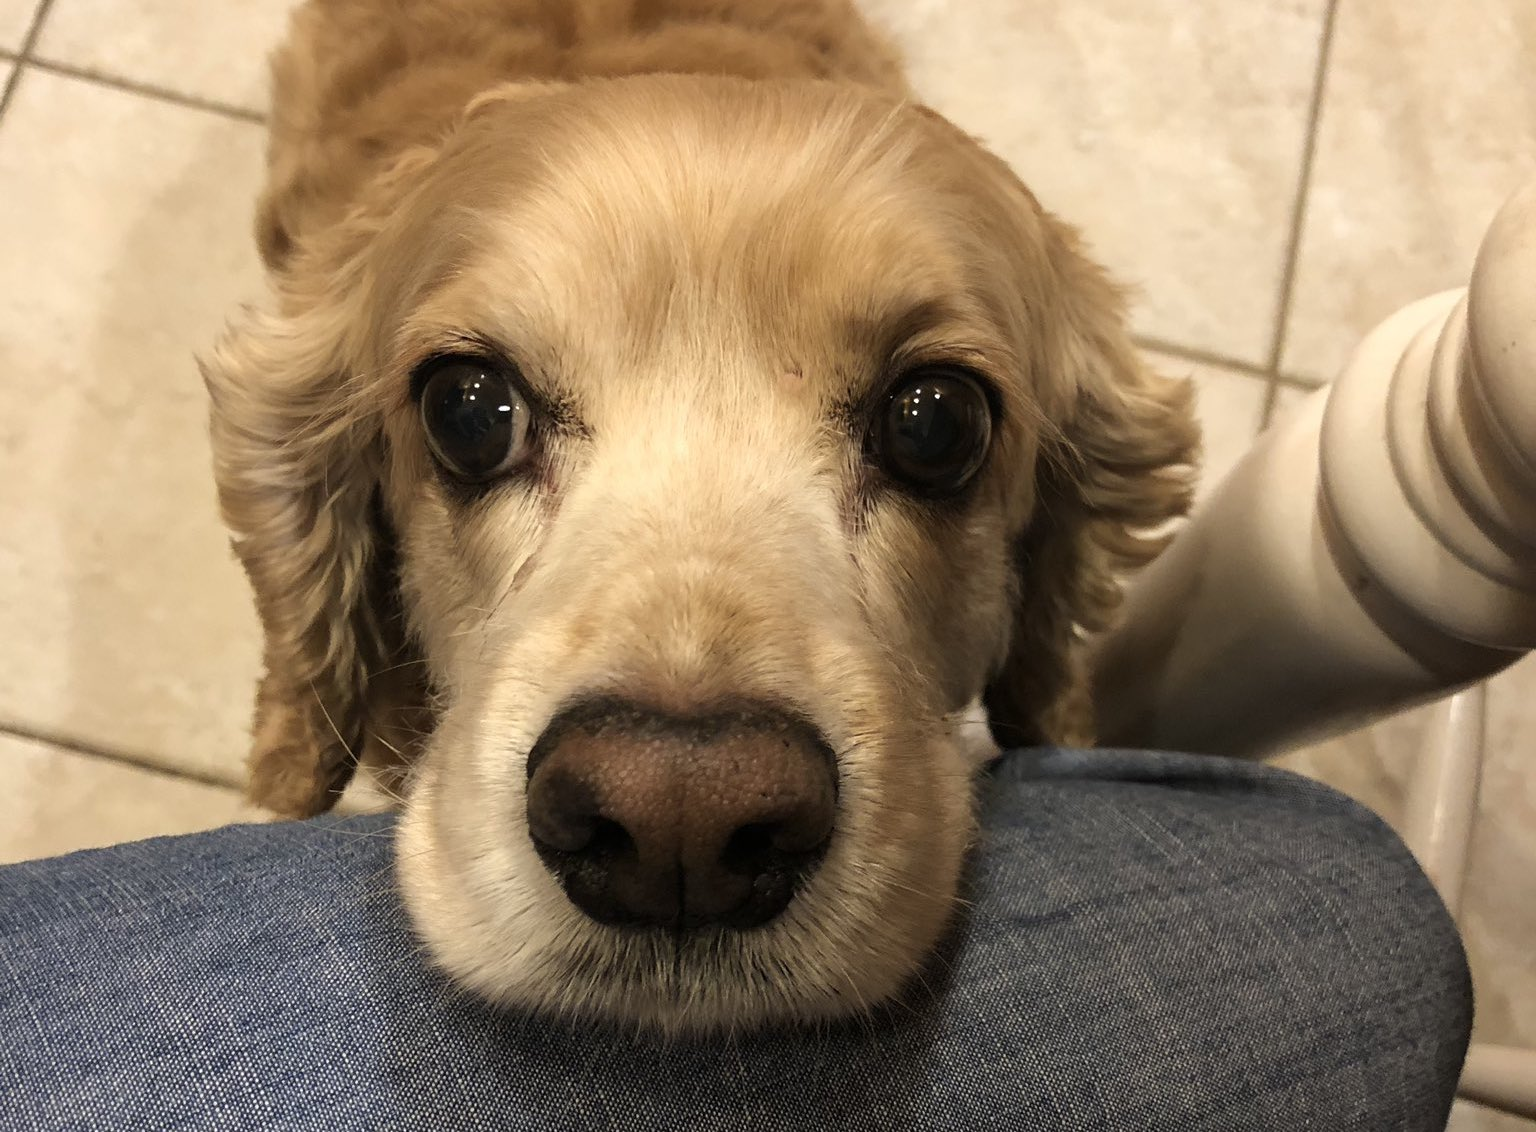 a dog rests its head on someone's knee, looking into the camera with its deep, begging, and impossible-to-ignore eyes